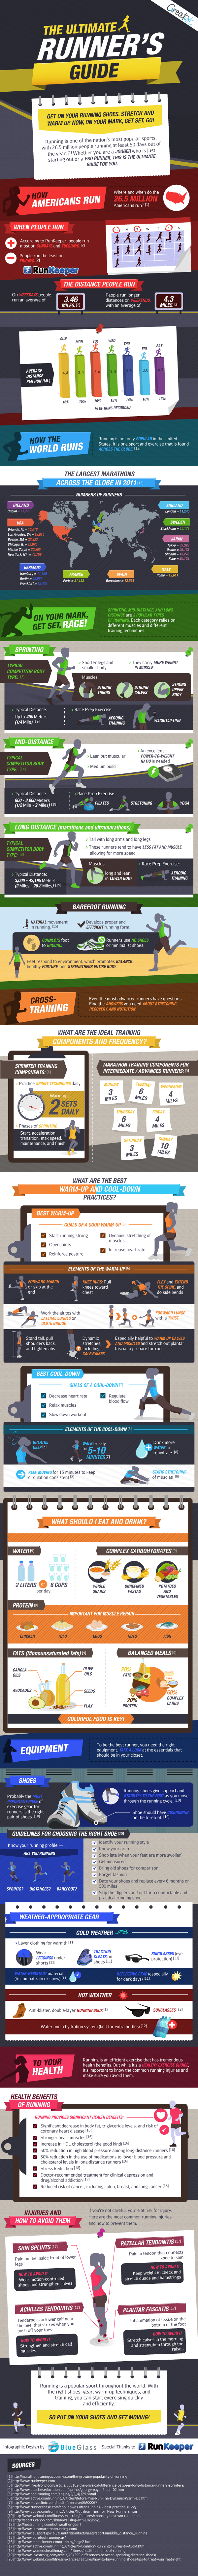 The Ultimate Runner's Guide